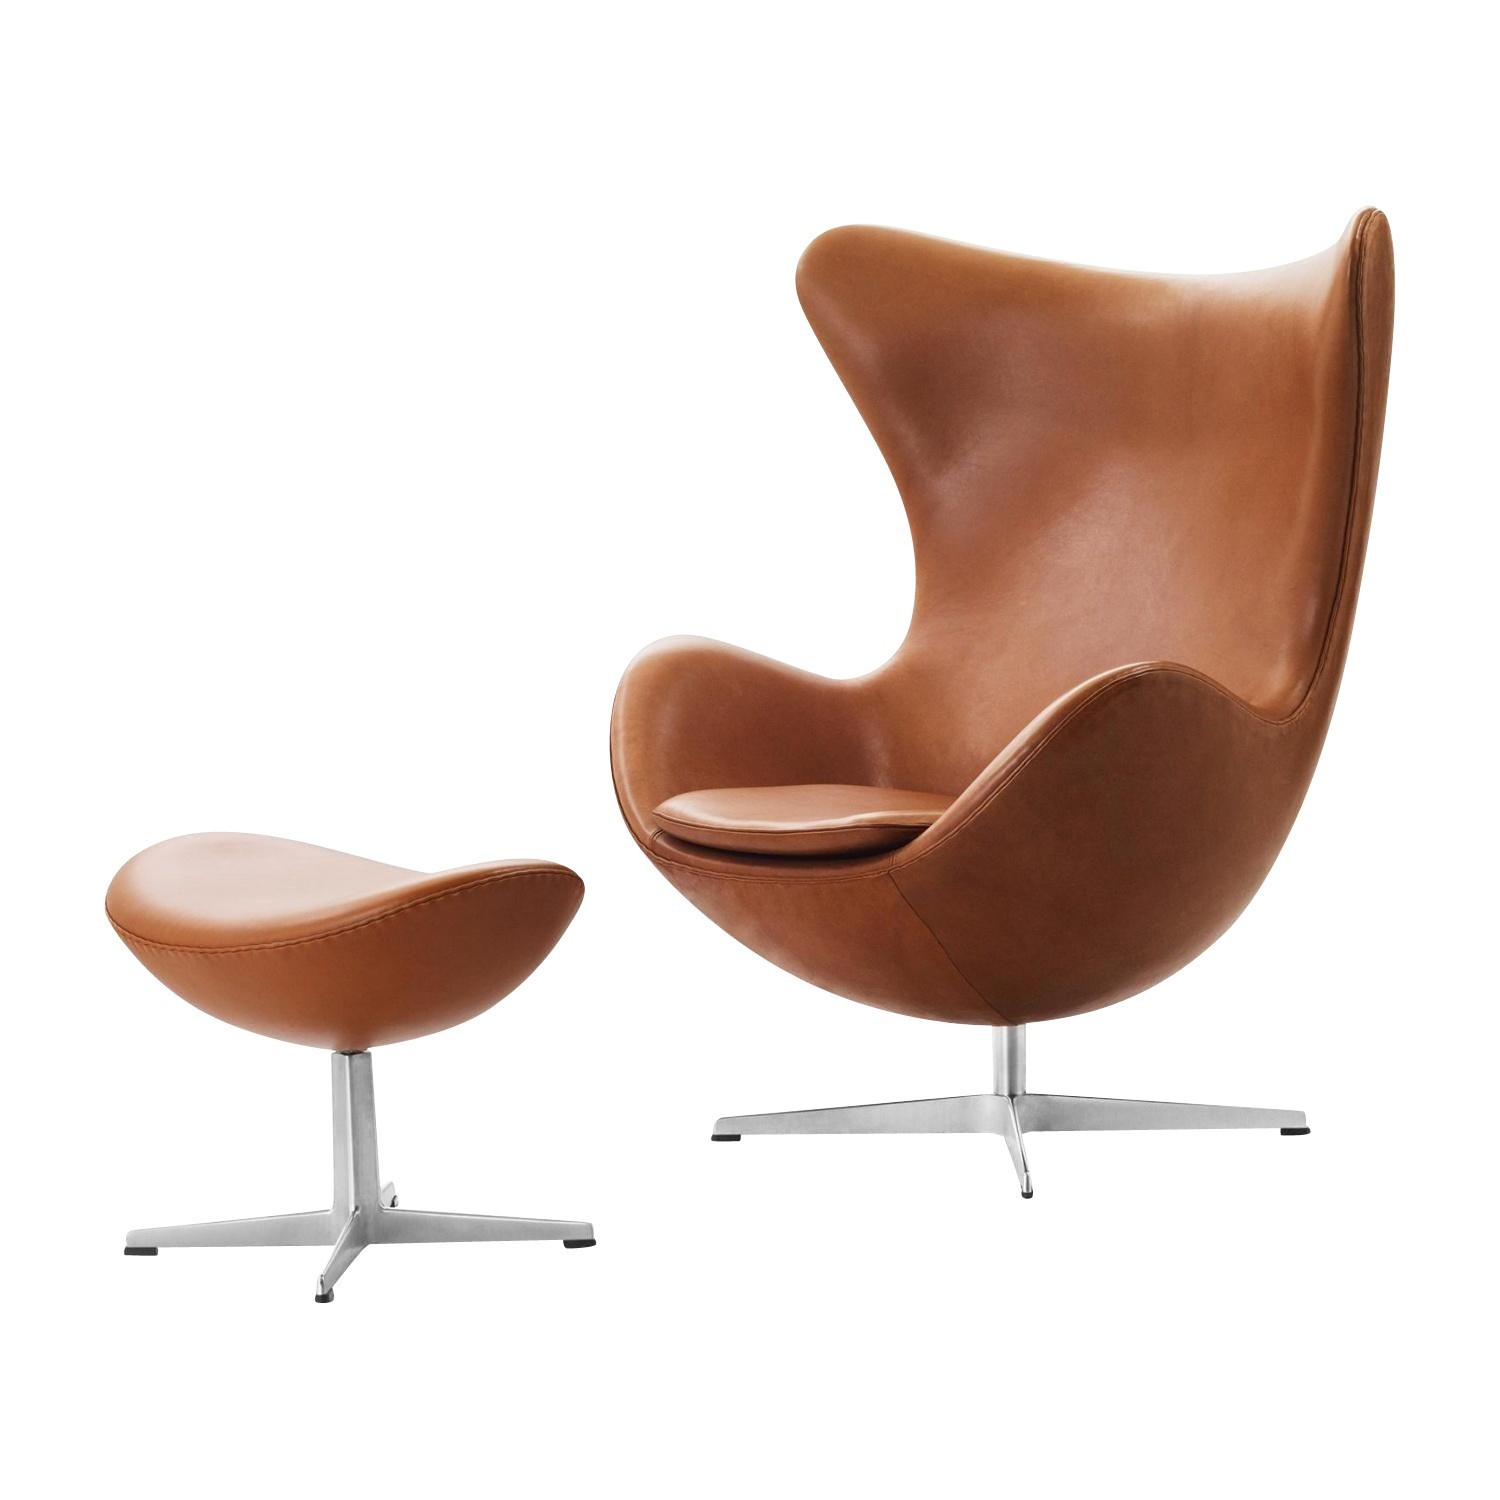 Fritz Hansen Aktion Egg Chair Das Ei Sessel Hocker Leder